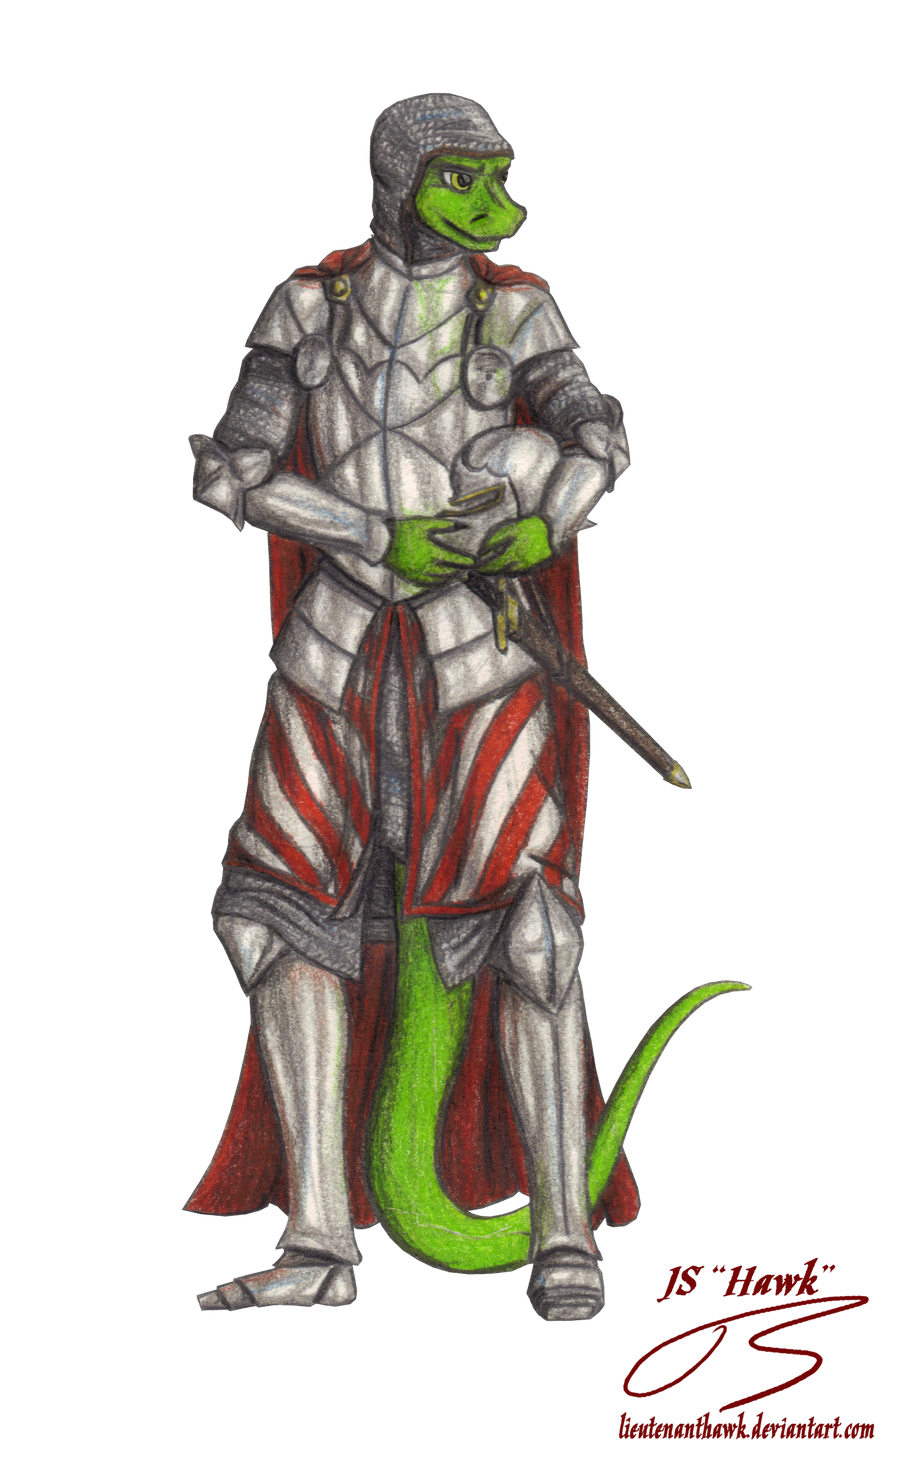 Knight-Commander Mordecius by LieutenantHawk